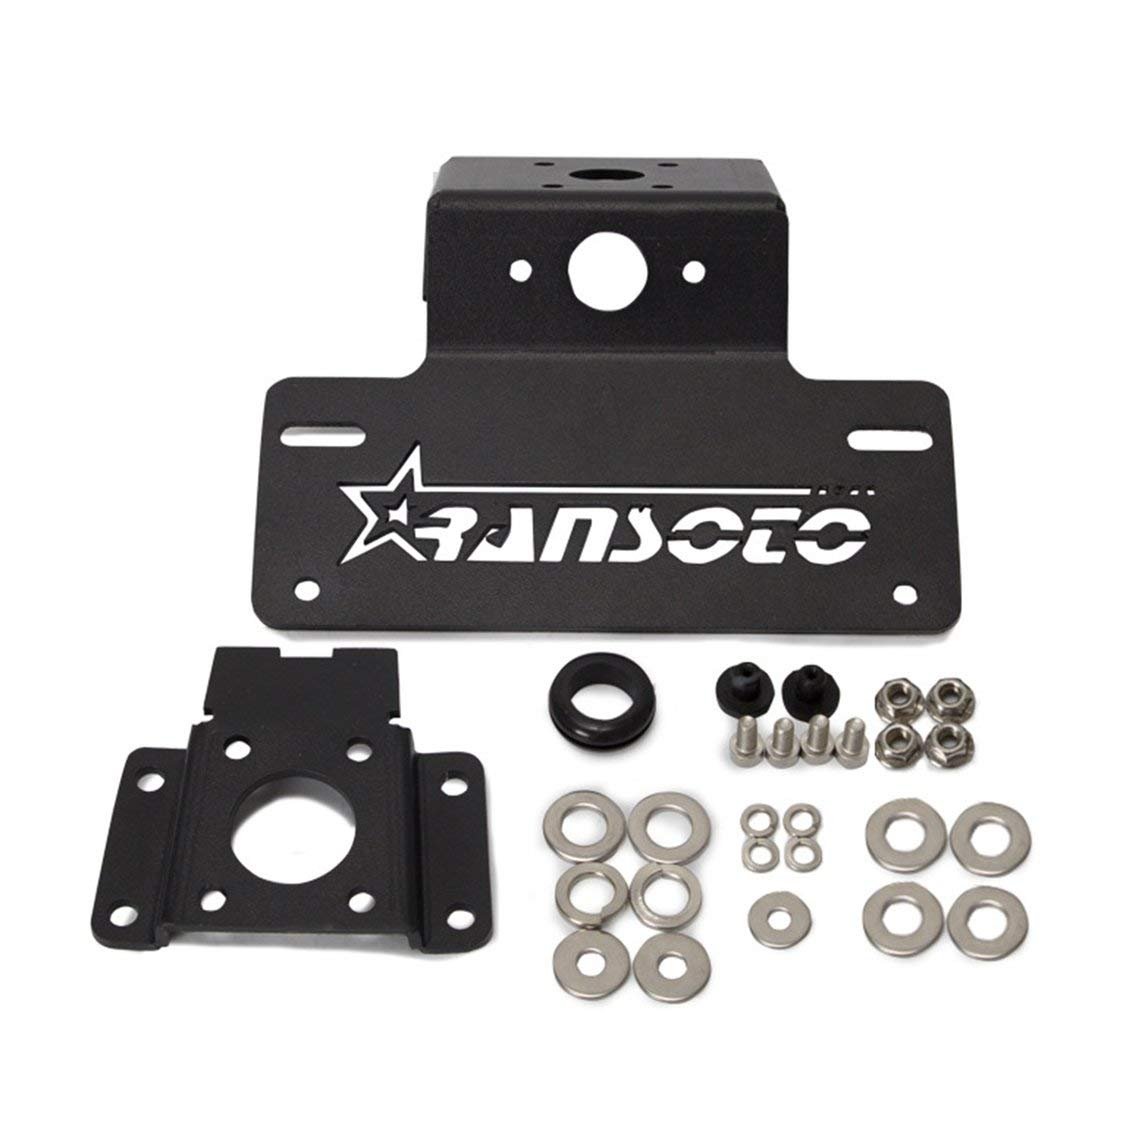 YXTFN Applicable For Yamaha Fz-07 & Mt-07 License Plate Frame Motorcycle Accessories